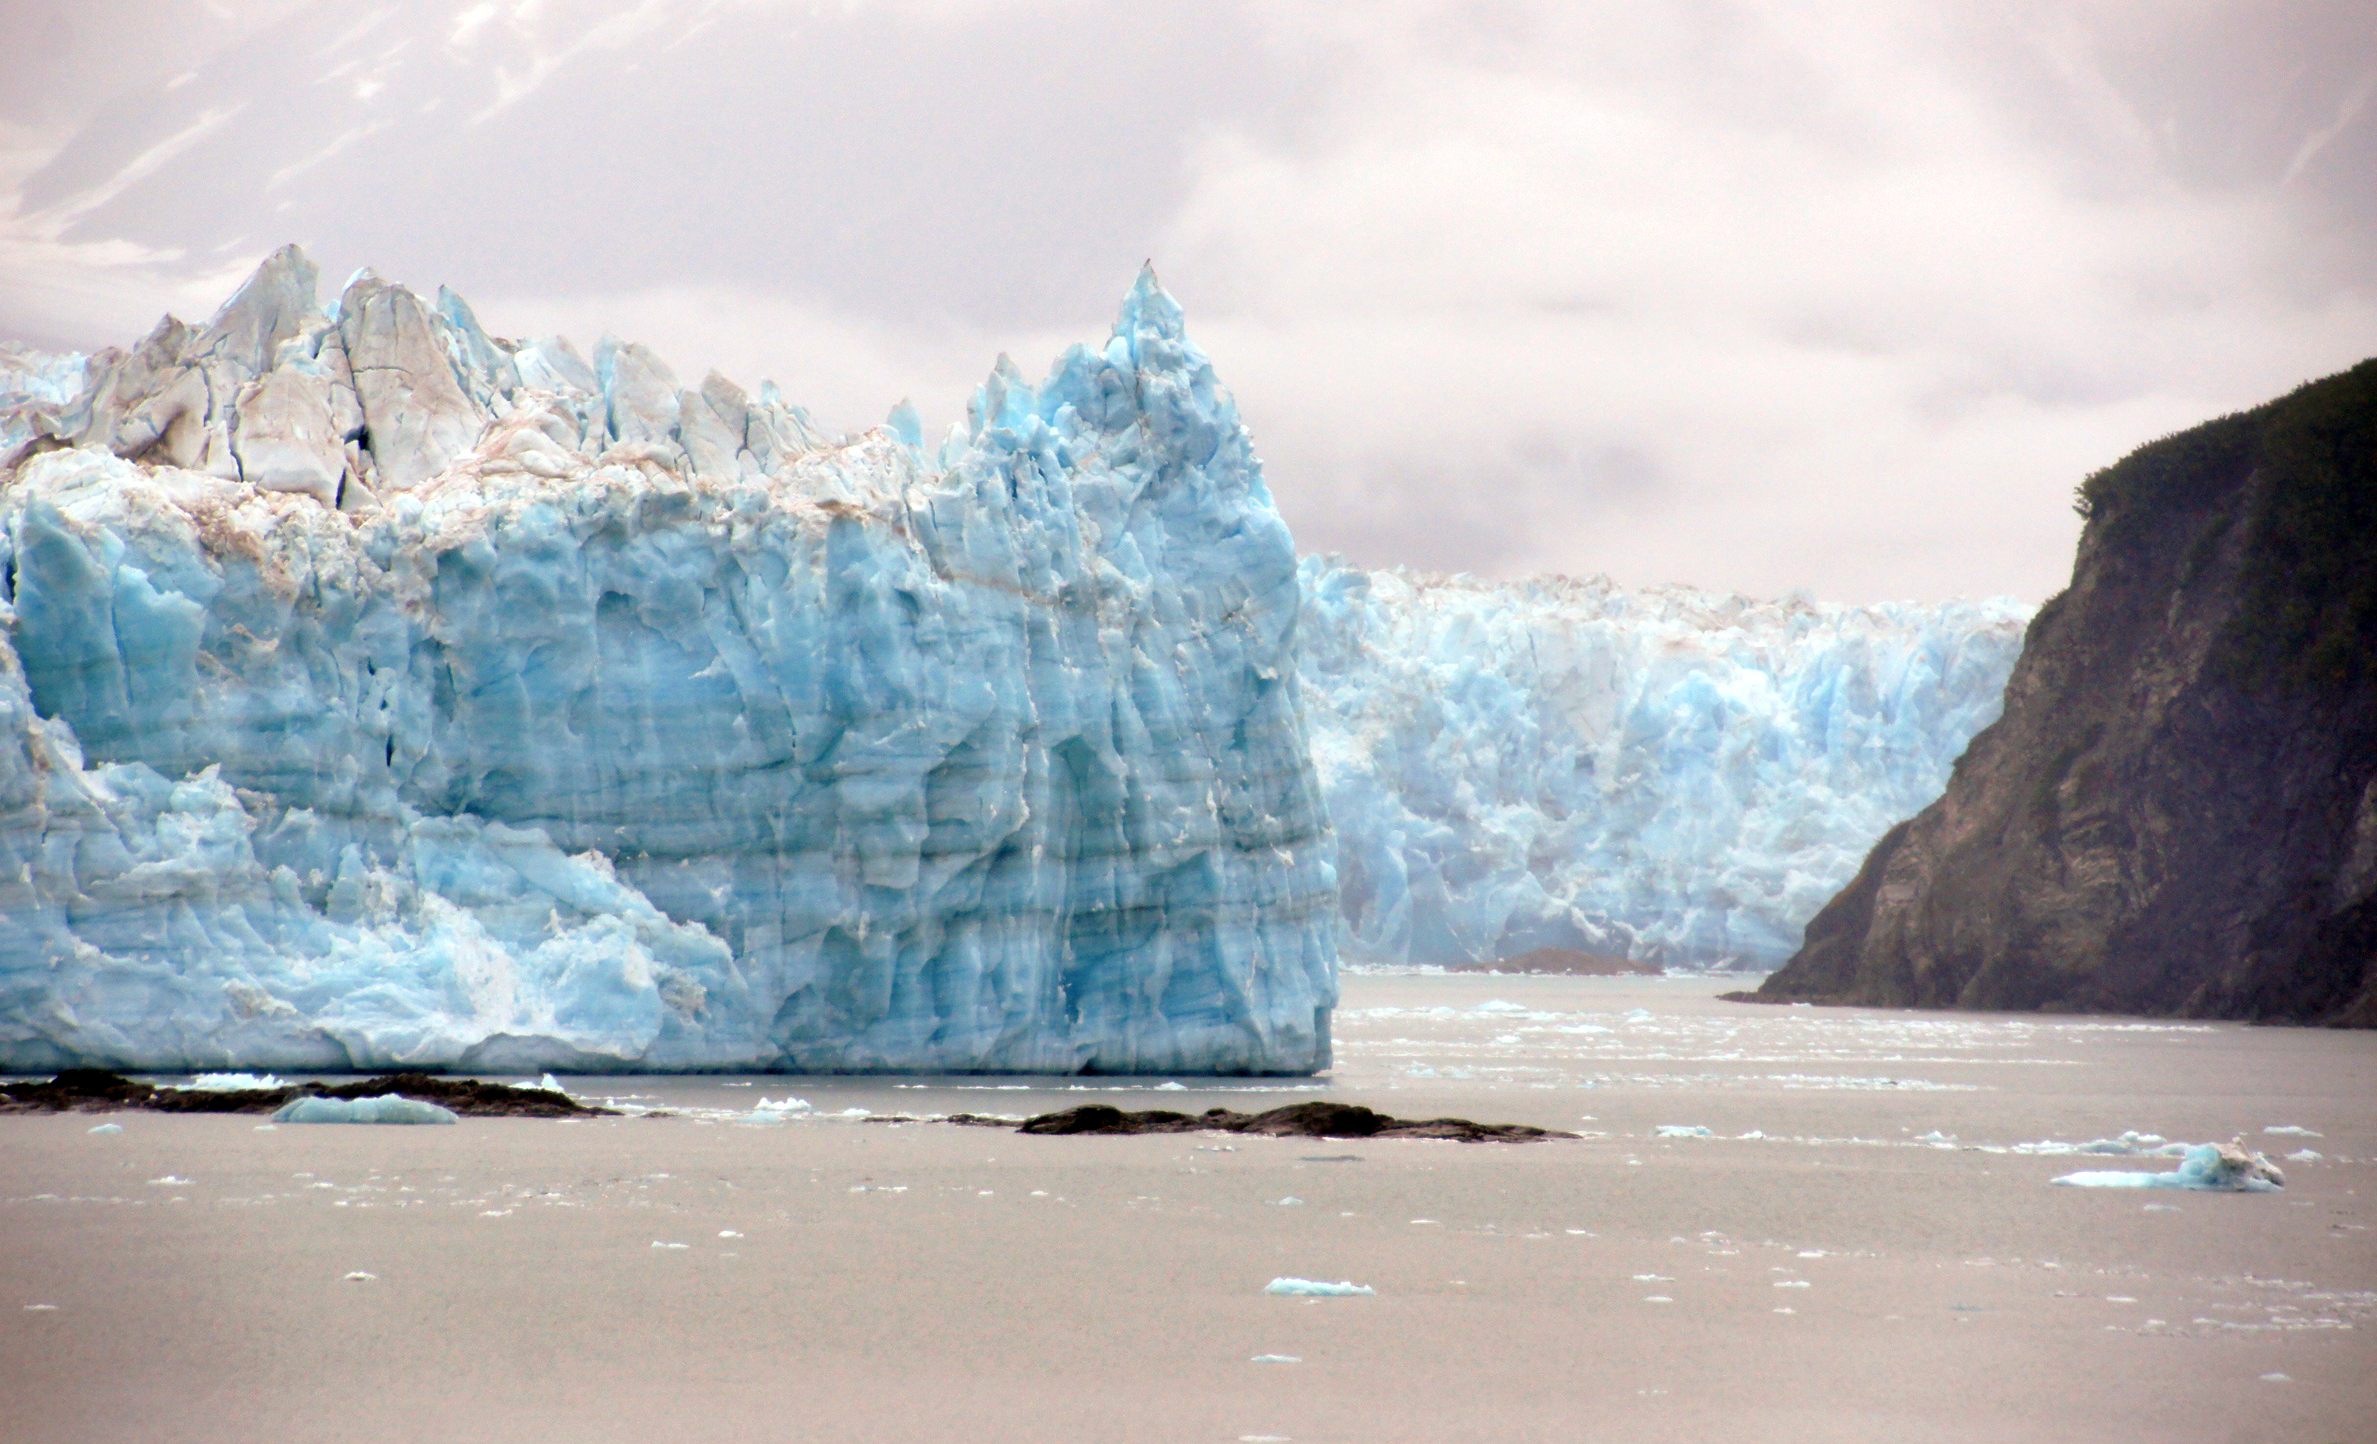 Global warming is one of the world's largest problems the world currently faces, resulting in higher temperatures and melting ice glaciers among other consequences.  Photo by Bernard Spragg. NZ from Flickr Creative Commons